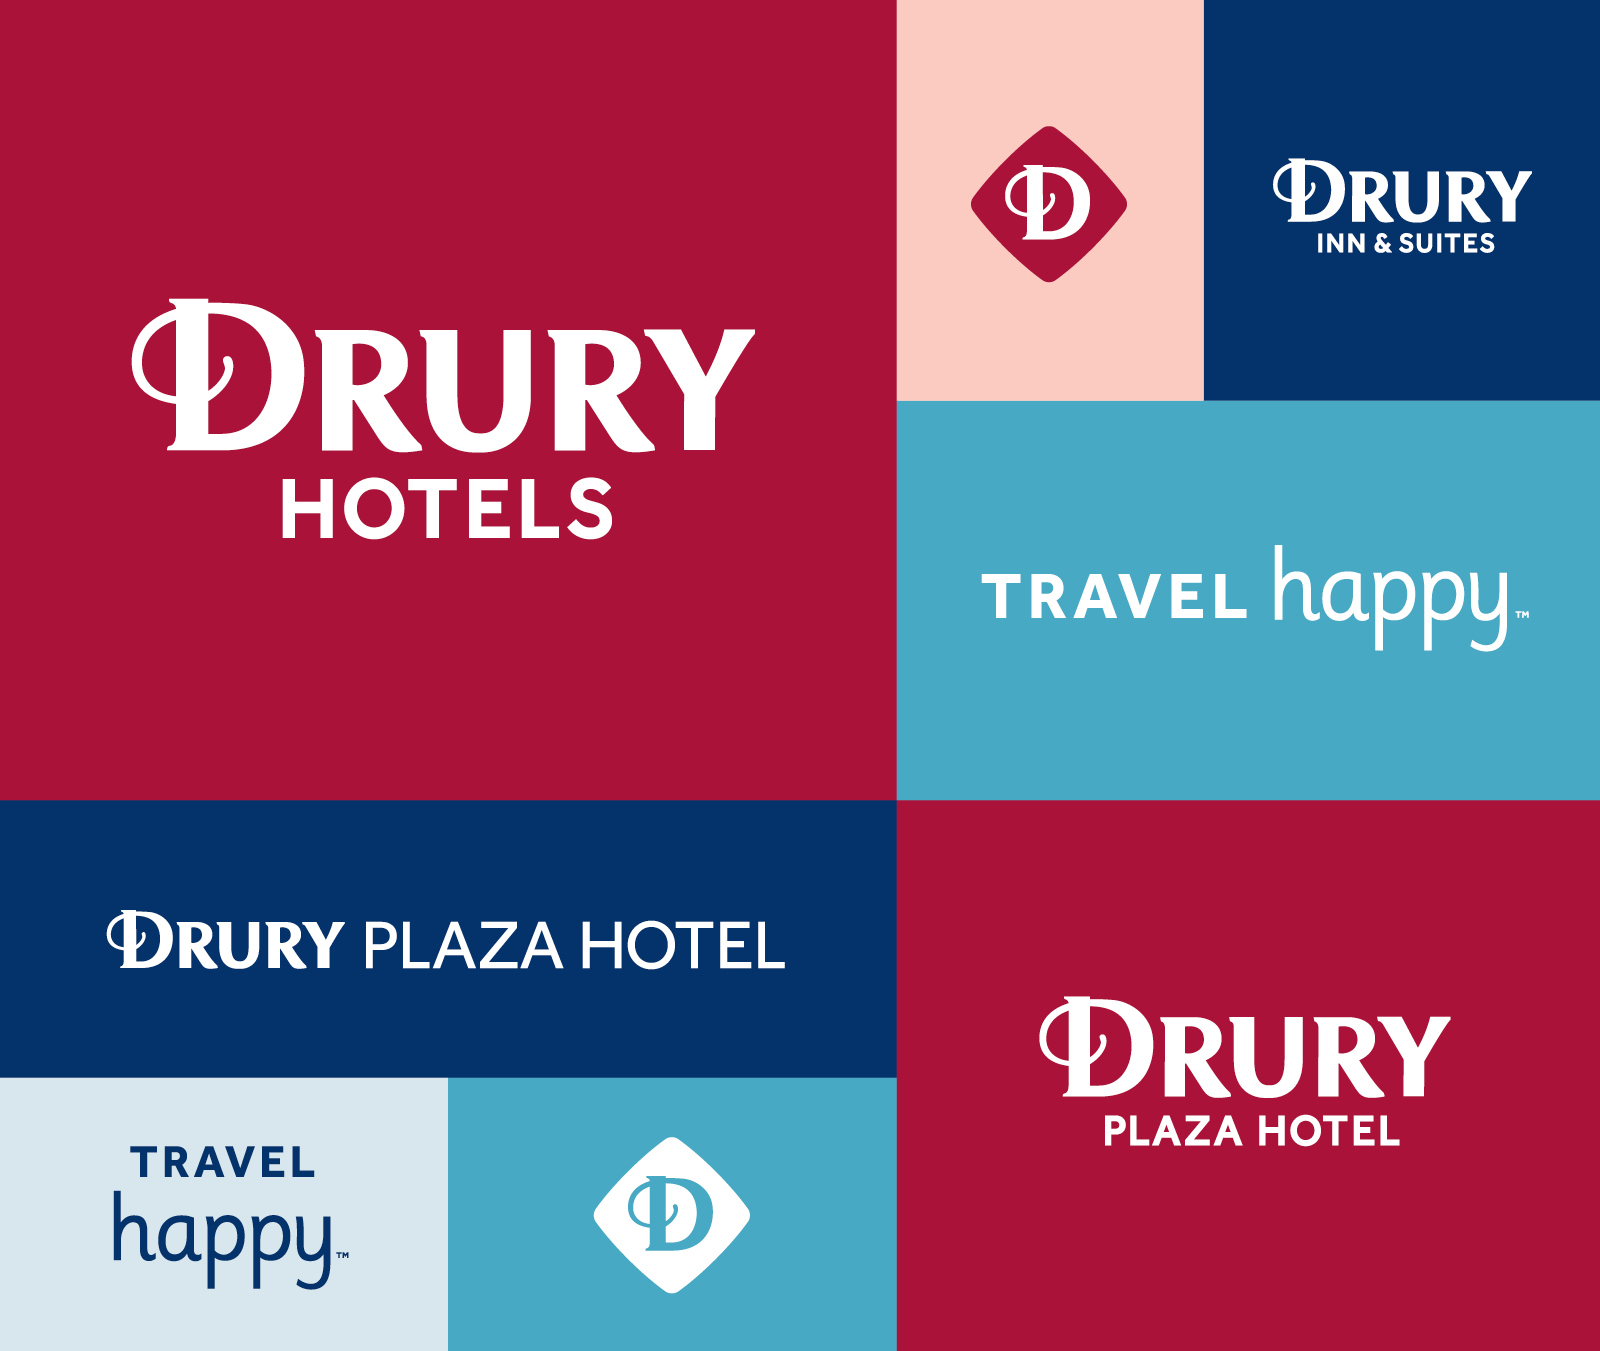 Drury Hotels logo collage